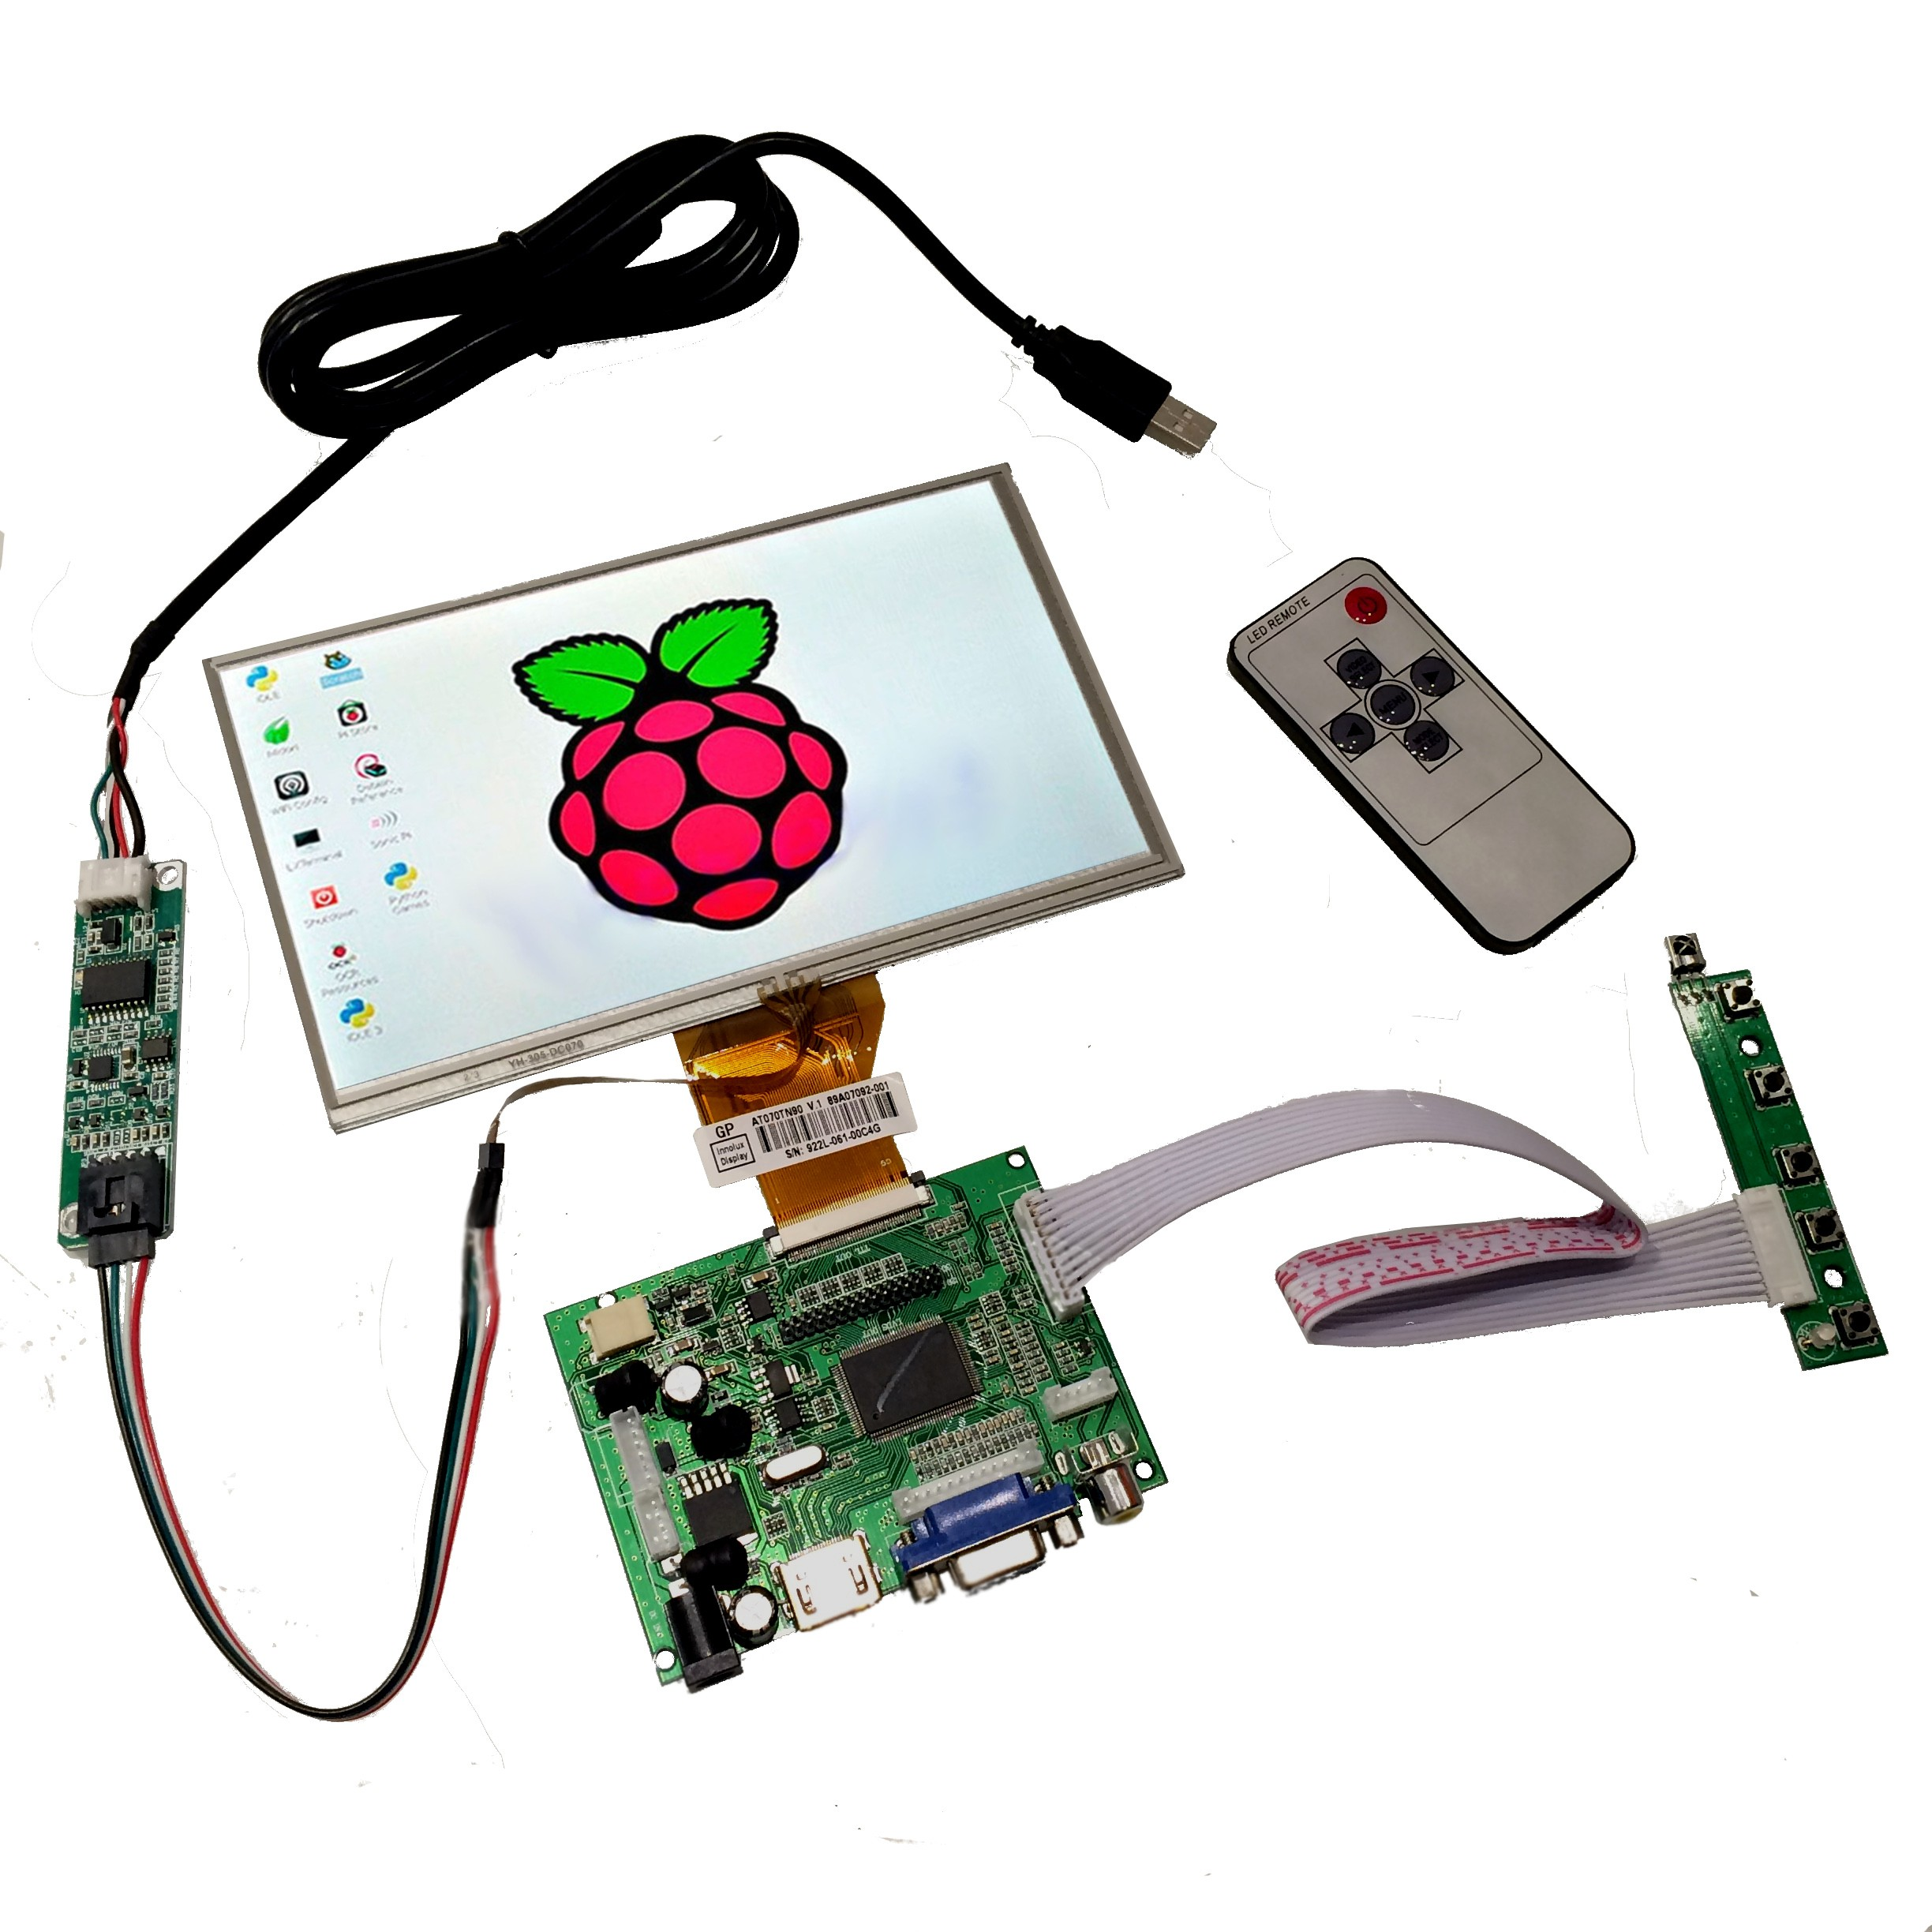 7499 7 Inch Raspberry Pi Touch Screen With Hdmi Input Tinkersphere Led Voltmeter 5012 Psu Batt Chargers Electronic Components